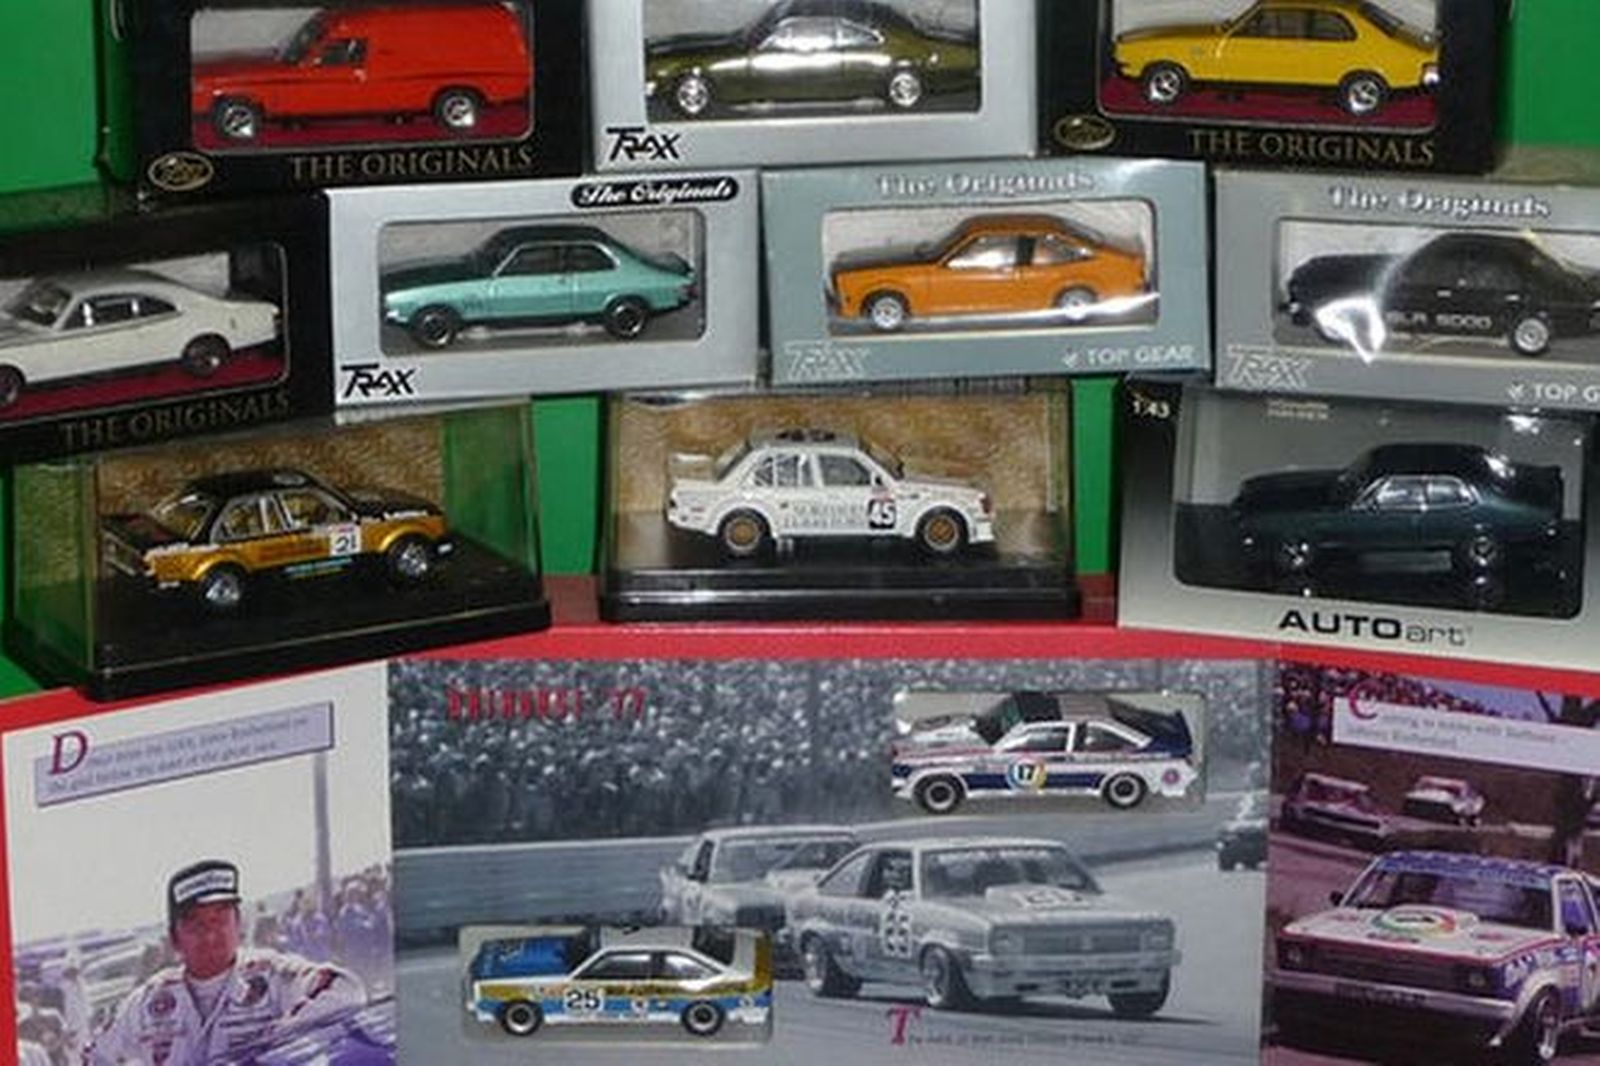 Model Cars - 10 Holden + A9X Bathurst 1977 Boxed Set Mix of Trax and Auto Art (1:43 scale)